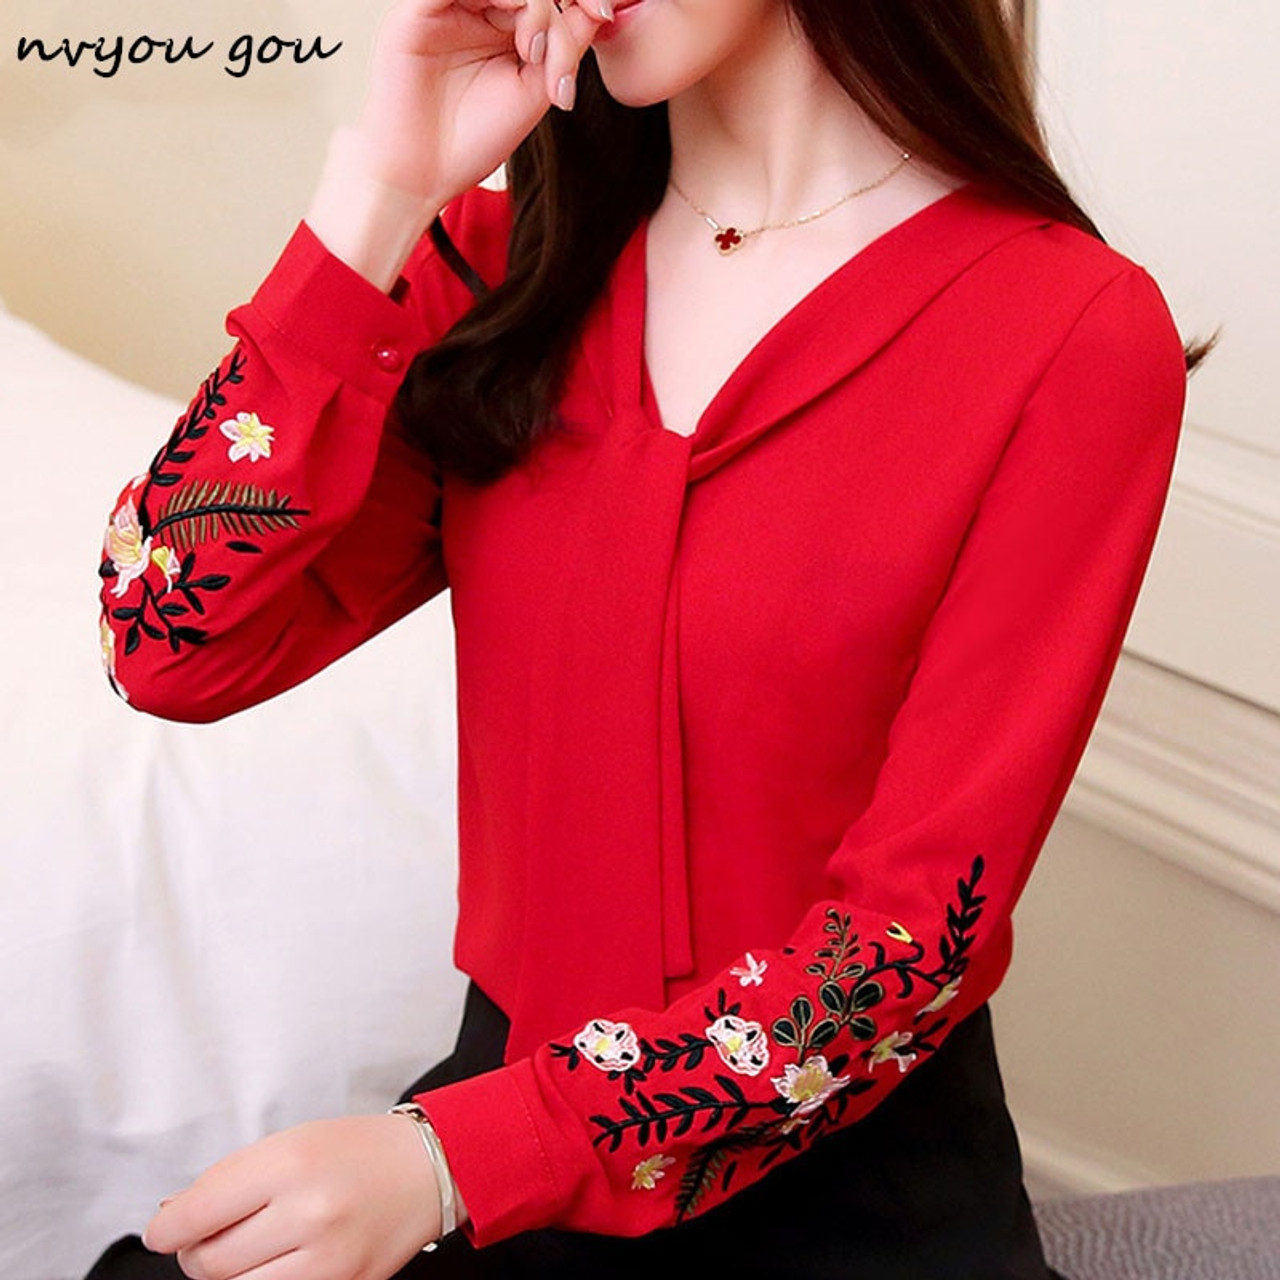 cea5943f91bffd ... nvyou gou Chiffon Embroidery Blouse 2019 New Fashion Women Tops Long  Sleeve Bow Tie Neck Elegant ...